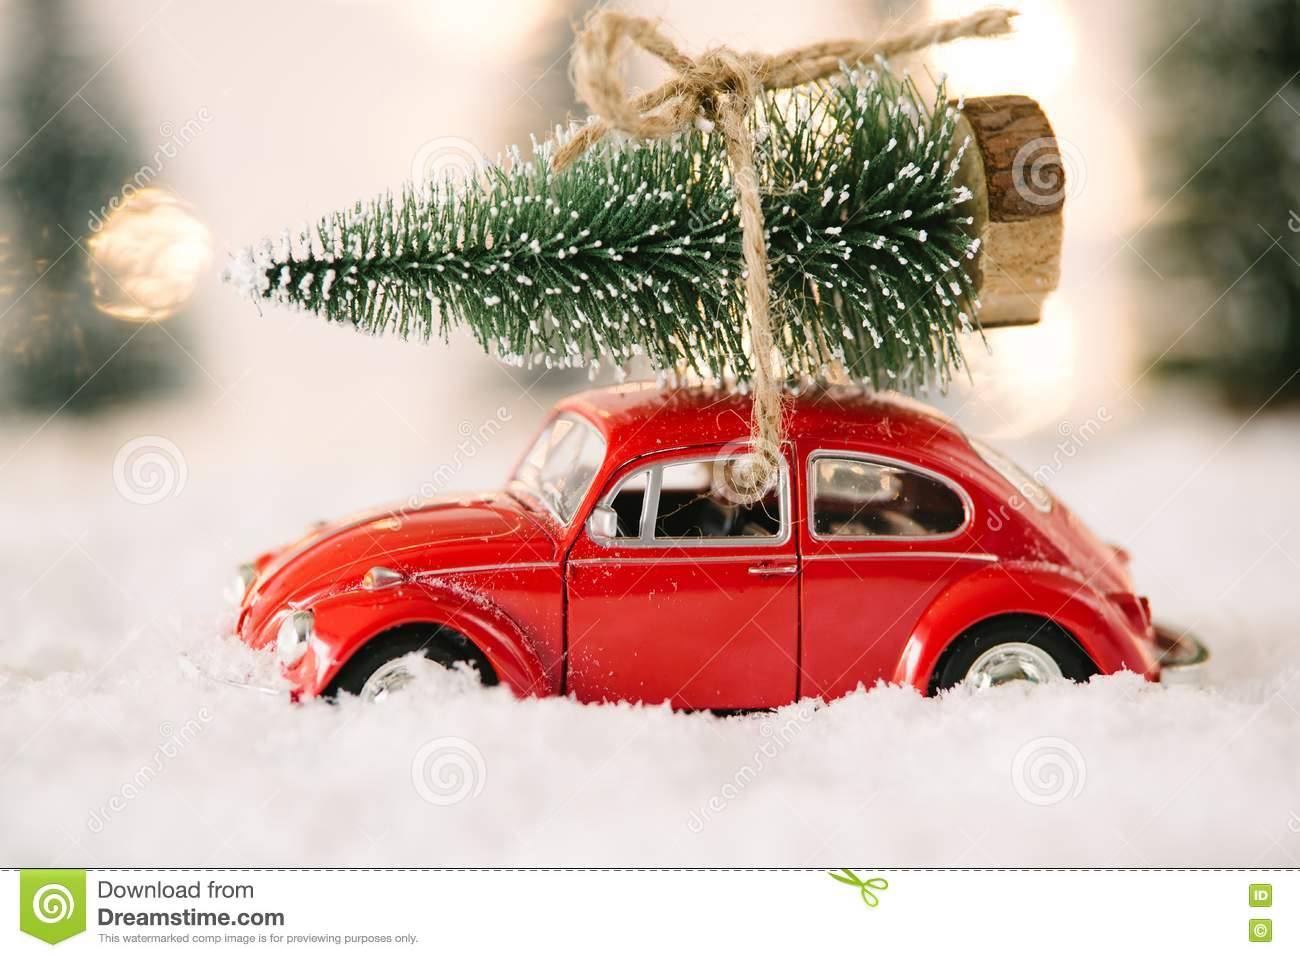 Car Christmas Tree.Little Red Car Toy Carrying Christmas Tree Stock Image